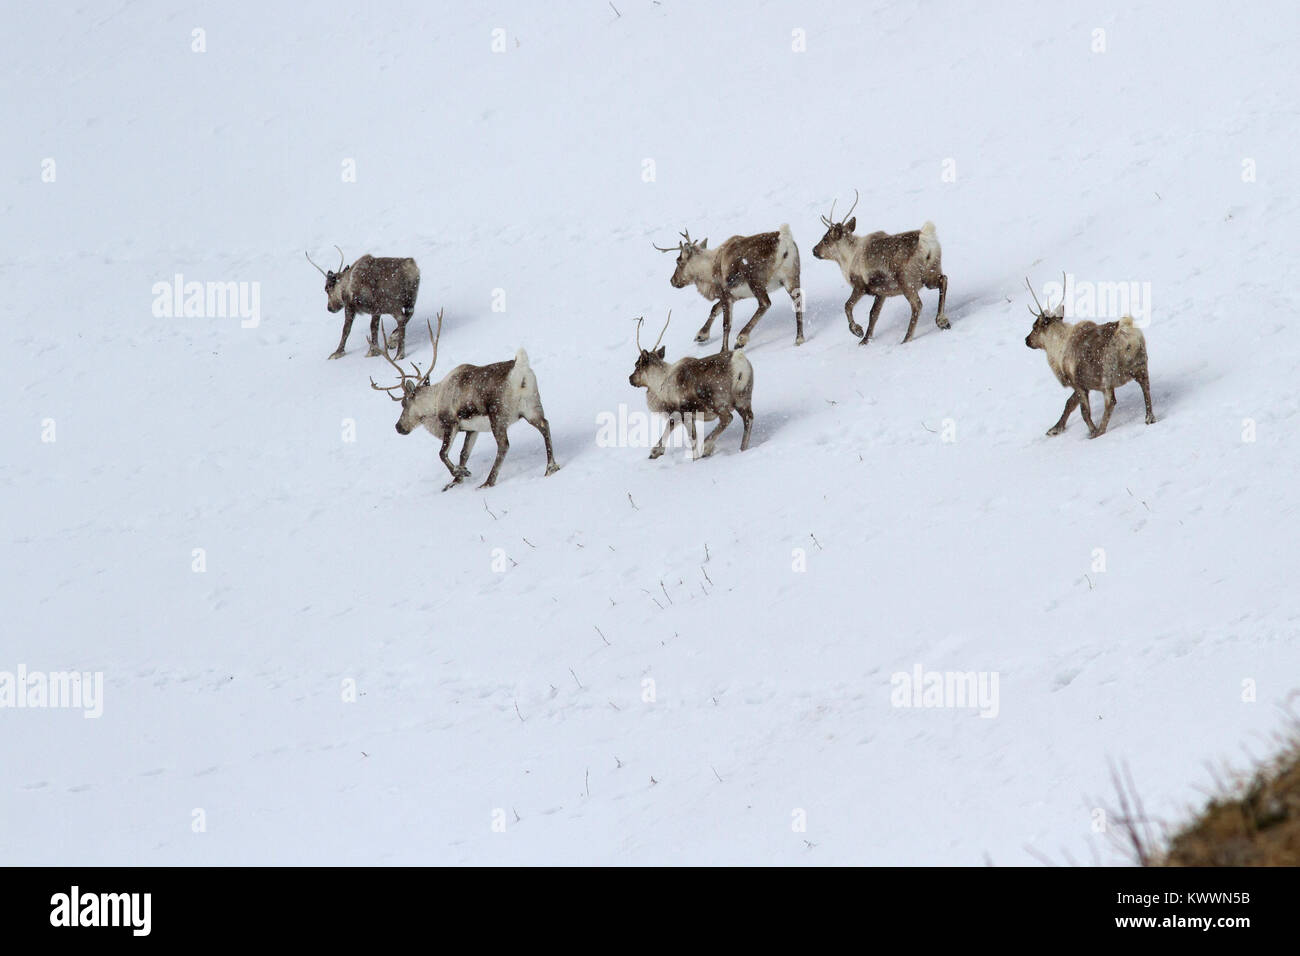 herd of Reindeerwalking along the slope of a snow-covered hill in a winters day - Stock Image